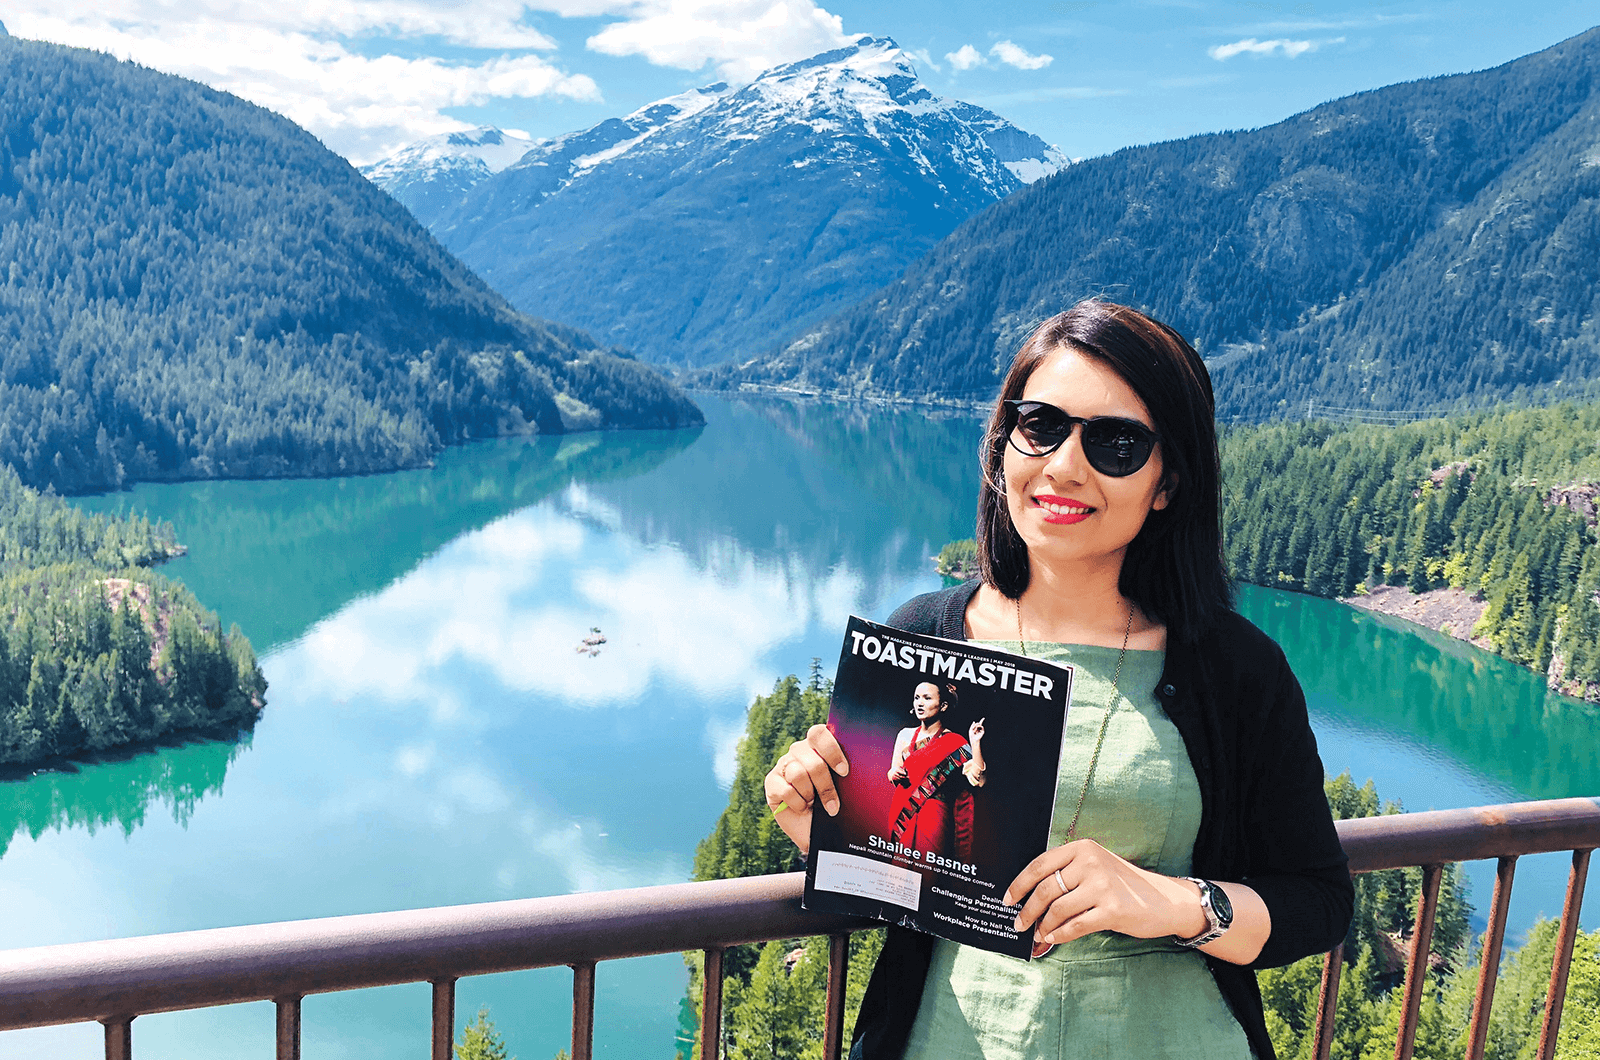 Karishma Tiwari, of Redmond, Washington, U.S., at Diablo Lake reservoir in Washington's North Cascades National Park.